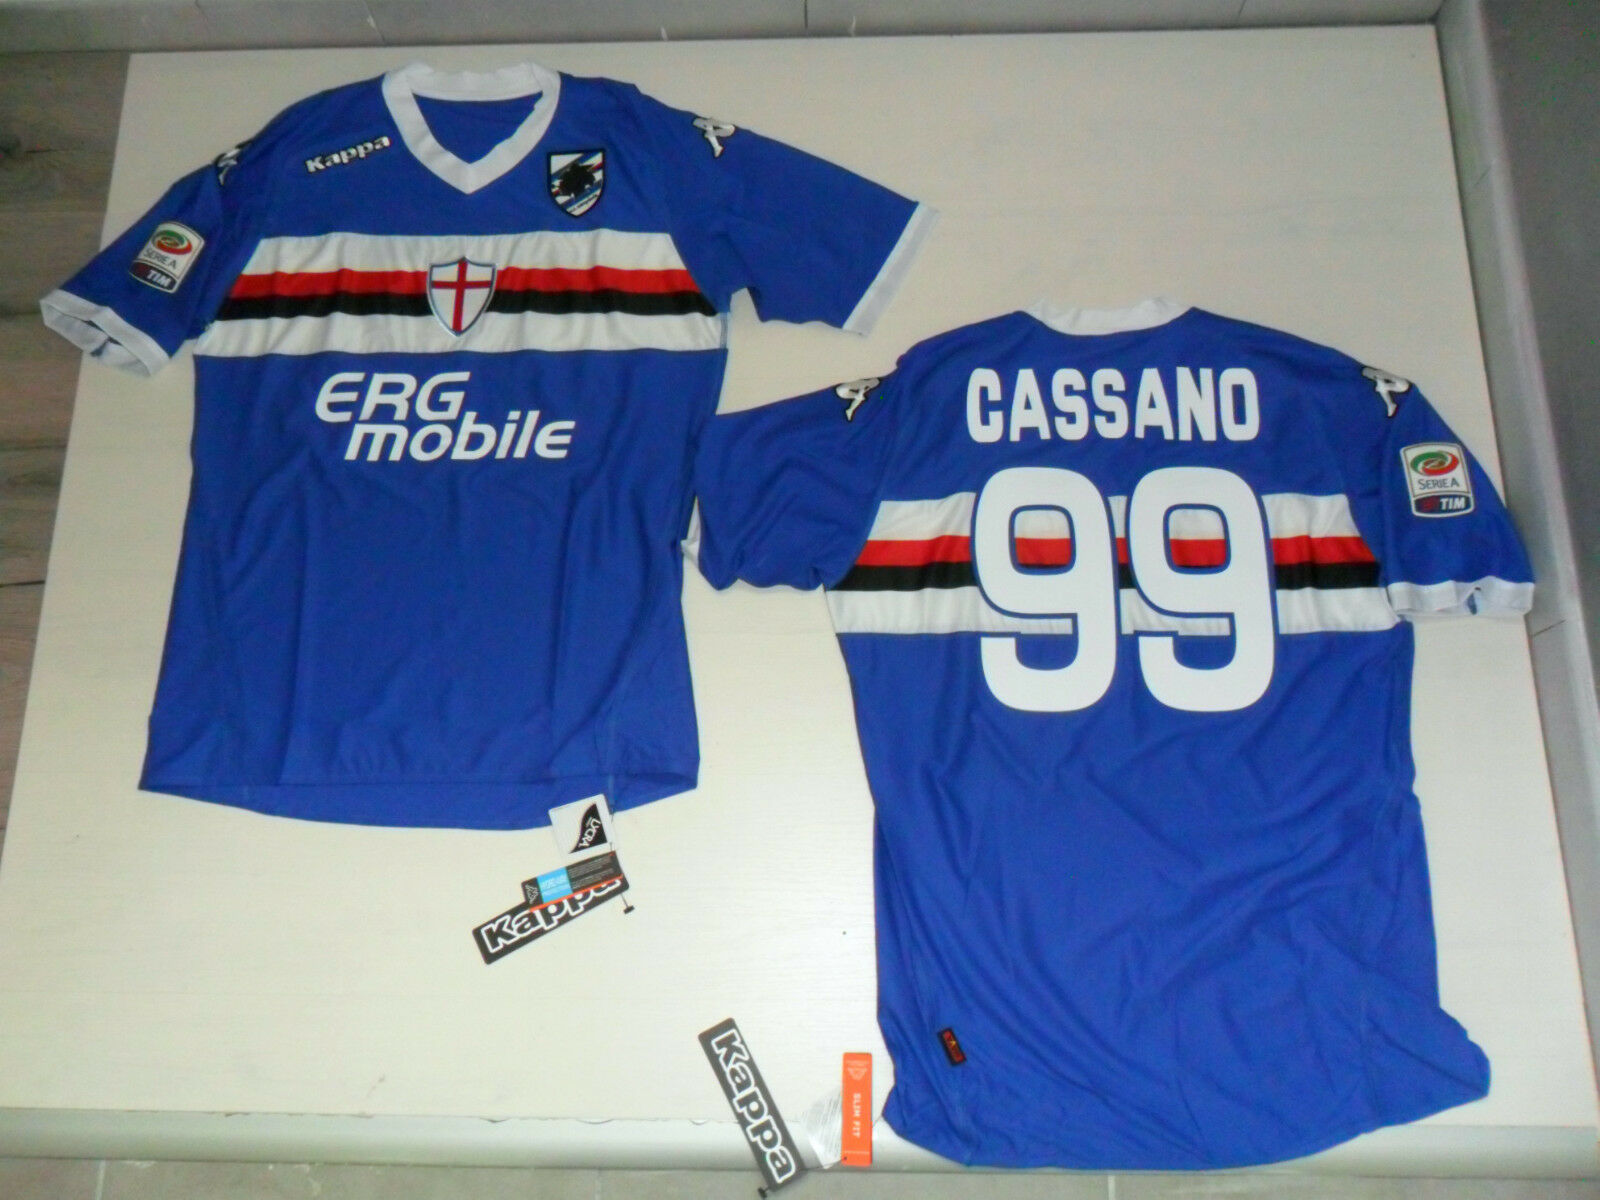 Sampdoria Shirt Race Authentic Erg Mobile Cassano T-Shirt Player Issue Jersey